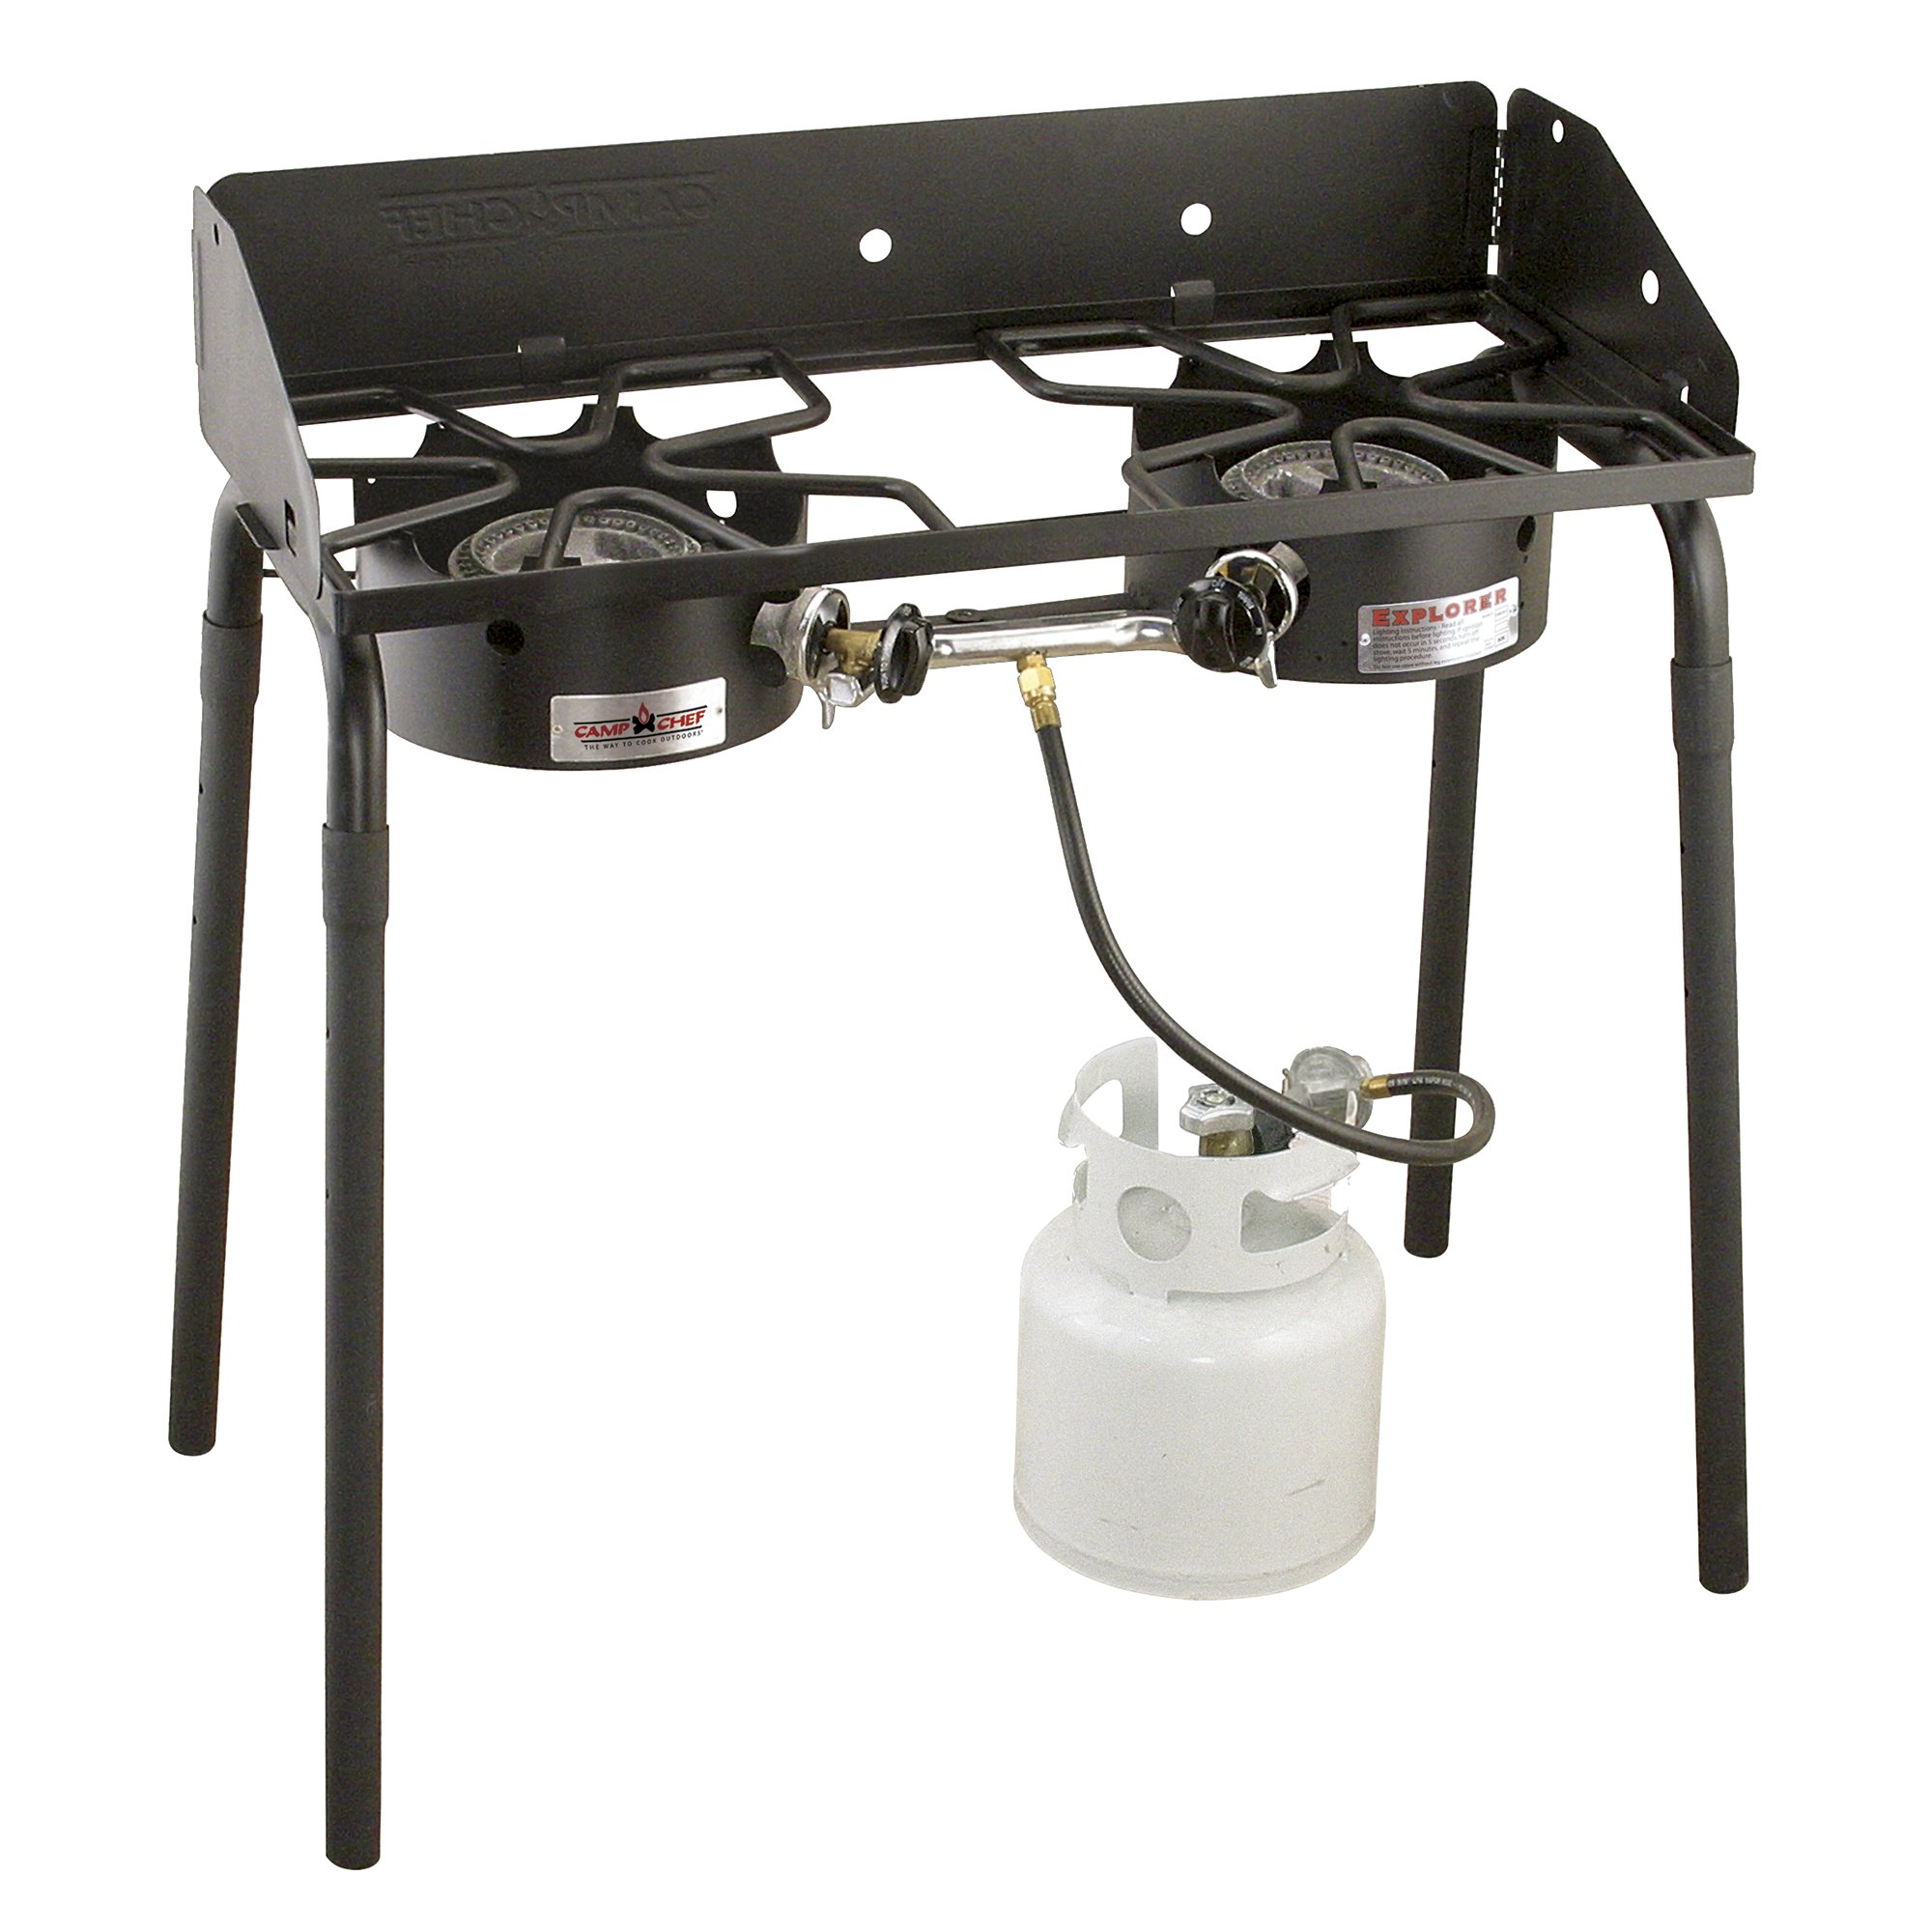 Camp Chef Explorer 30,000 BTU 2-Burner Propane Stove